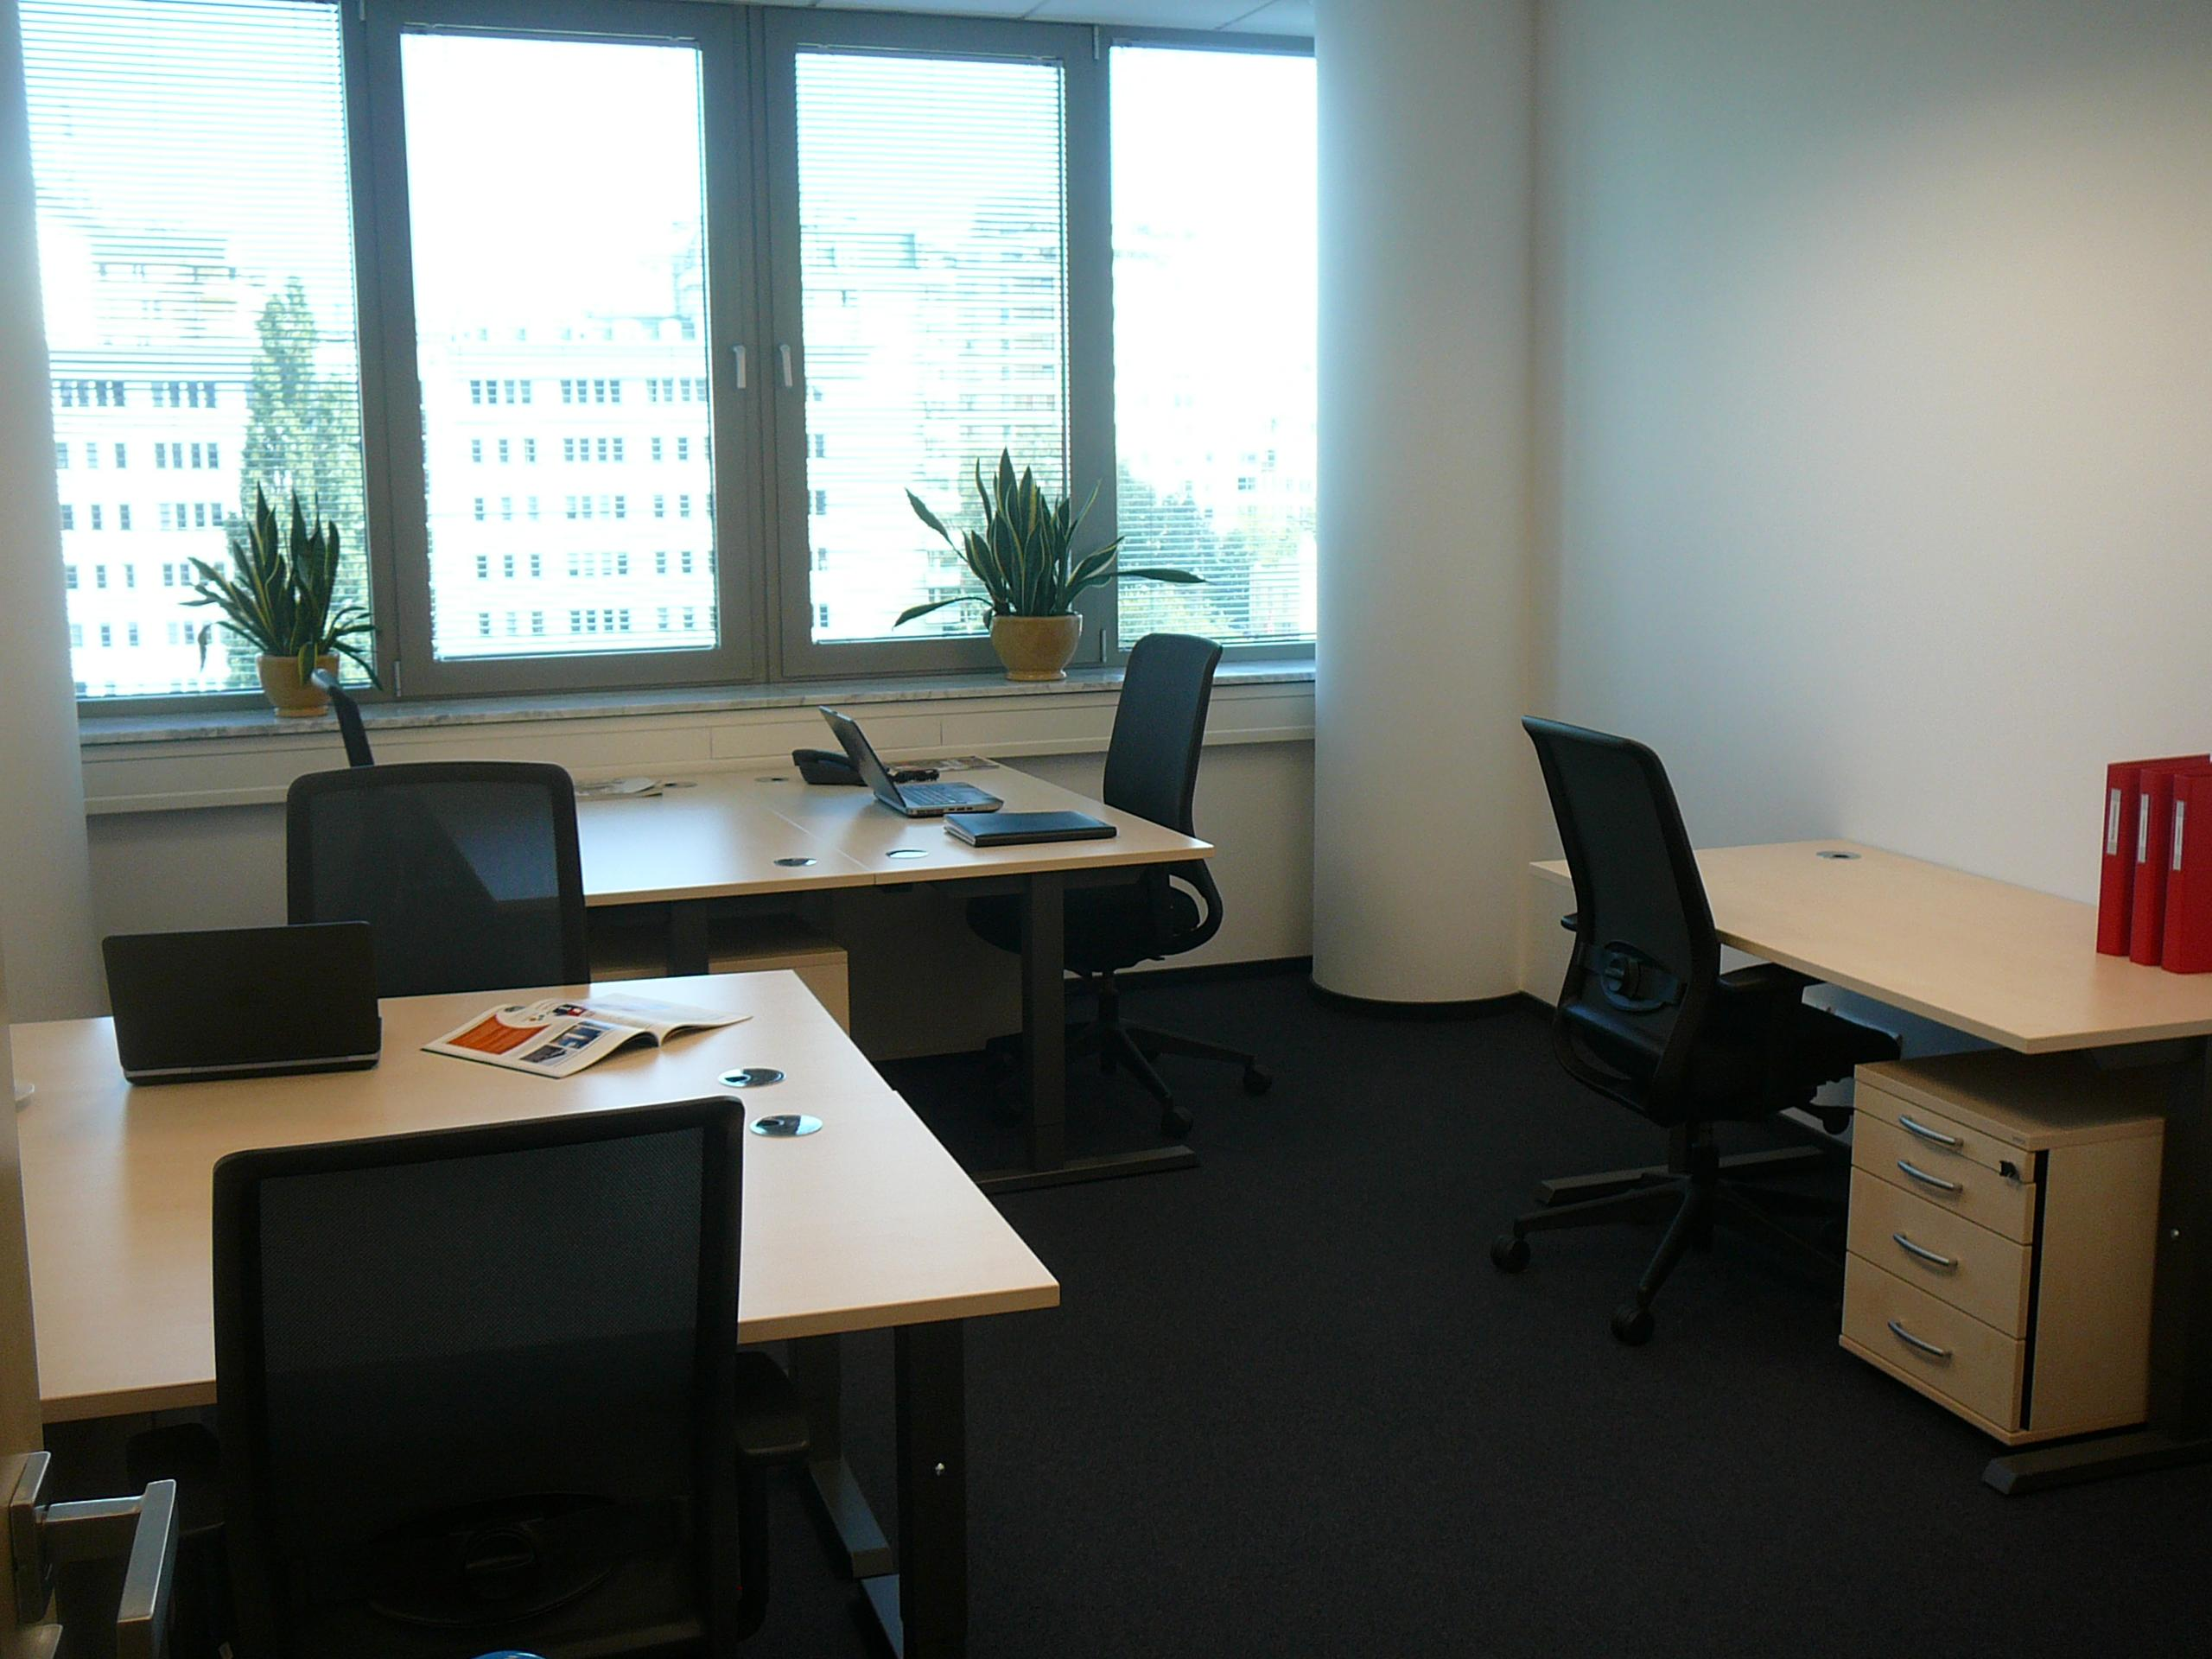 Office - Centrum Biznesowe Ogrodowa 58 - Serviced Office - Warsaw